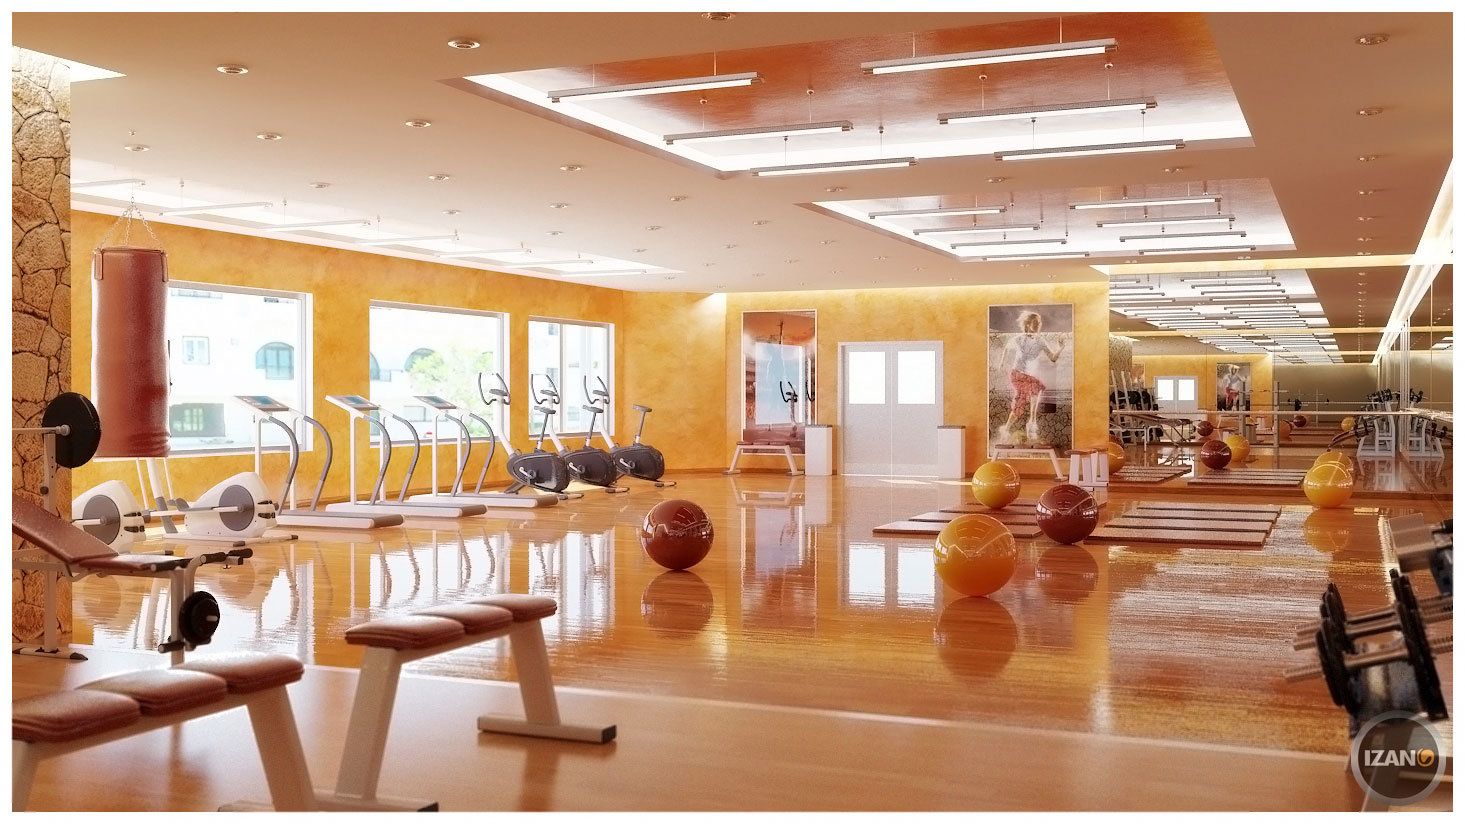 Professional Interior Designing Gym Room In Home (Image 8 of 10)